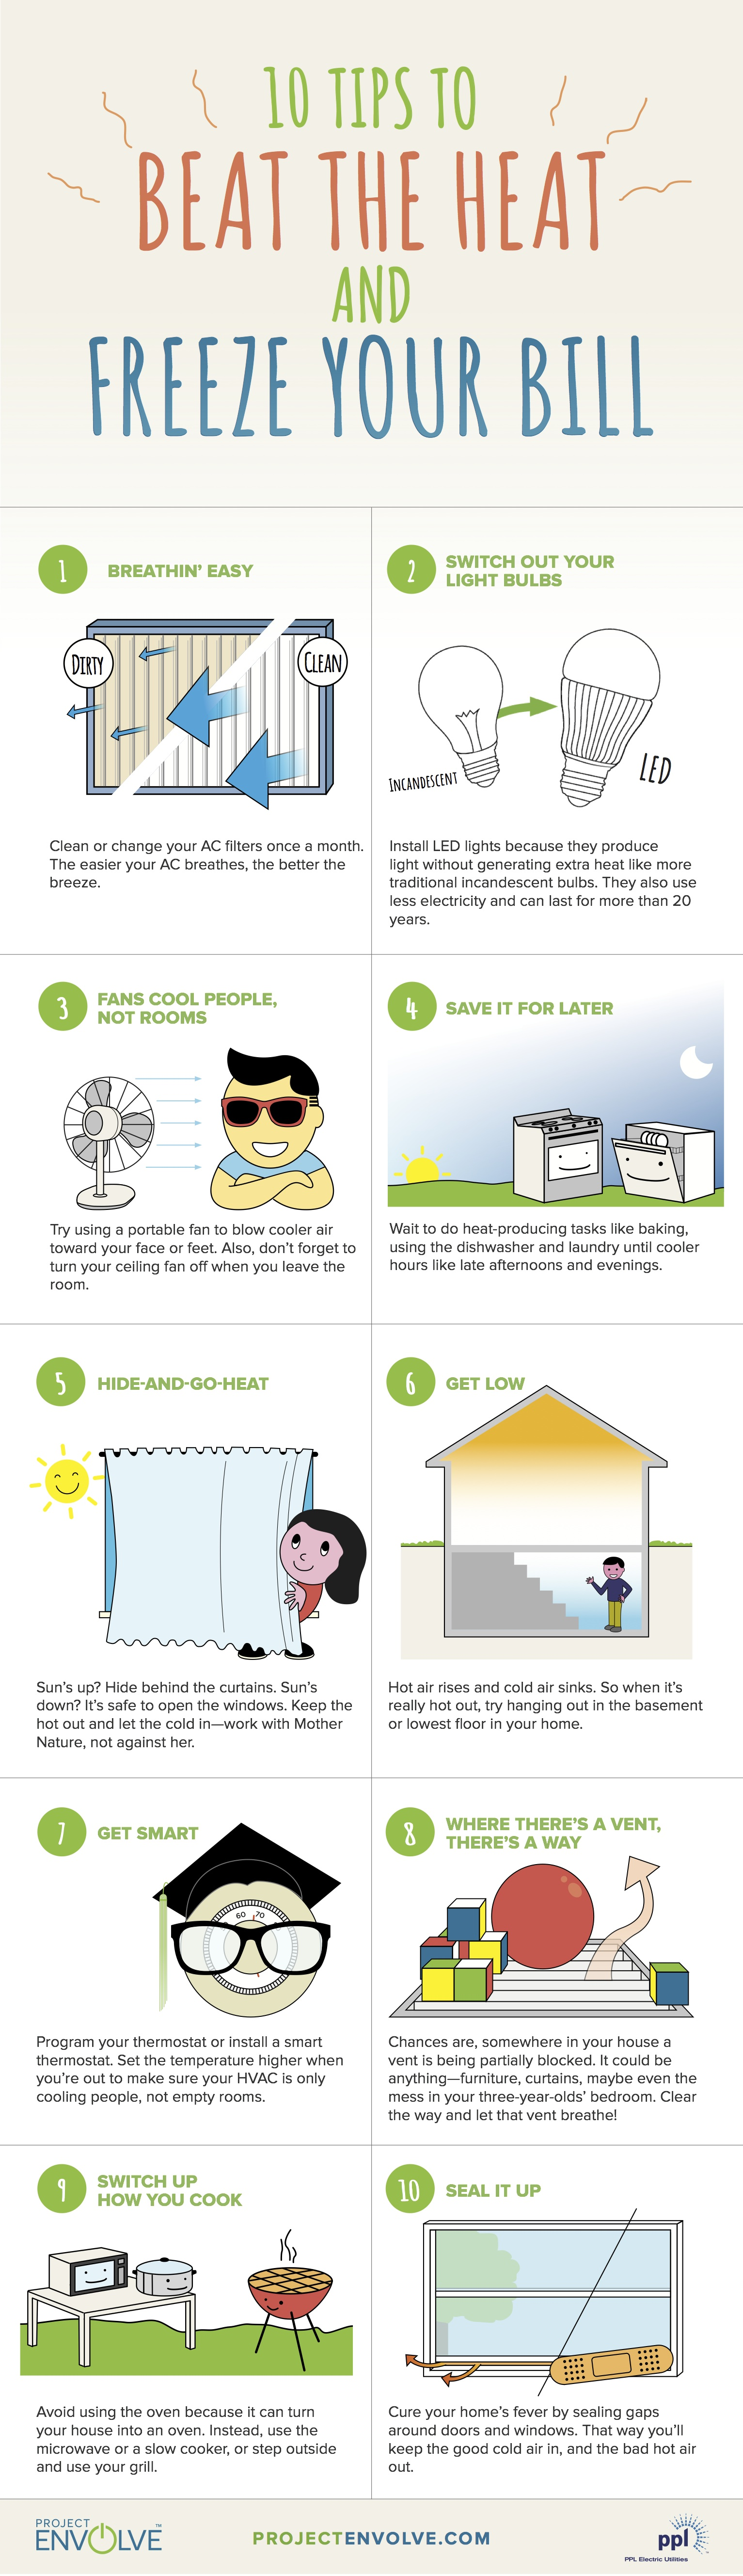 Top Energy Saving Tips - It Is a Keeper